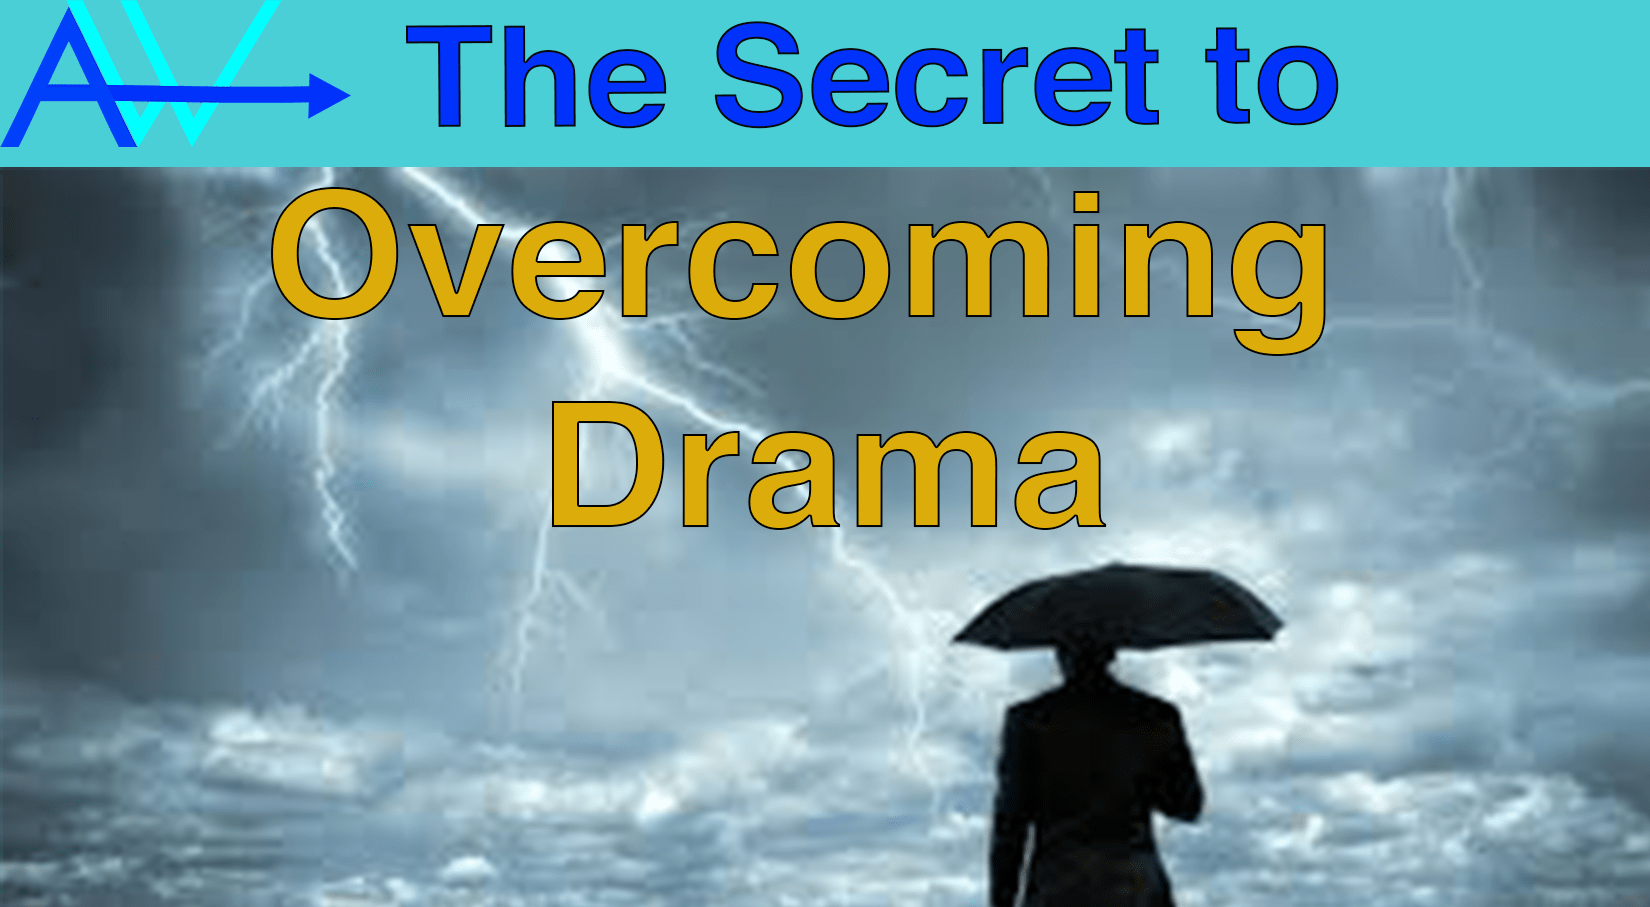 The Beginning of the STORM – CryptoAstrology Nov 16<br><span style='color:#00adee;font-size:.8em'>The Secret to Overcoming Drama </span>